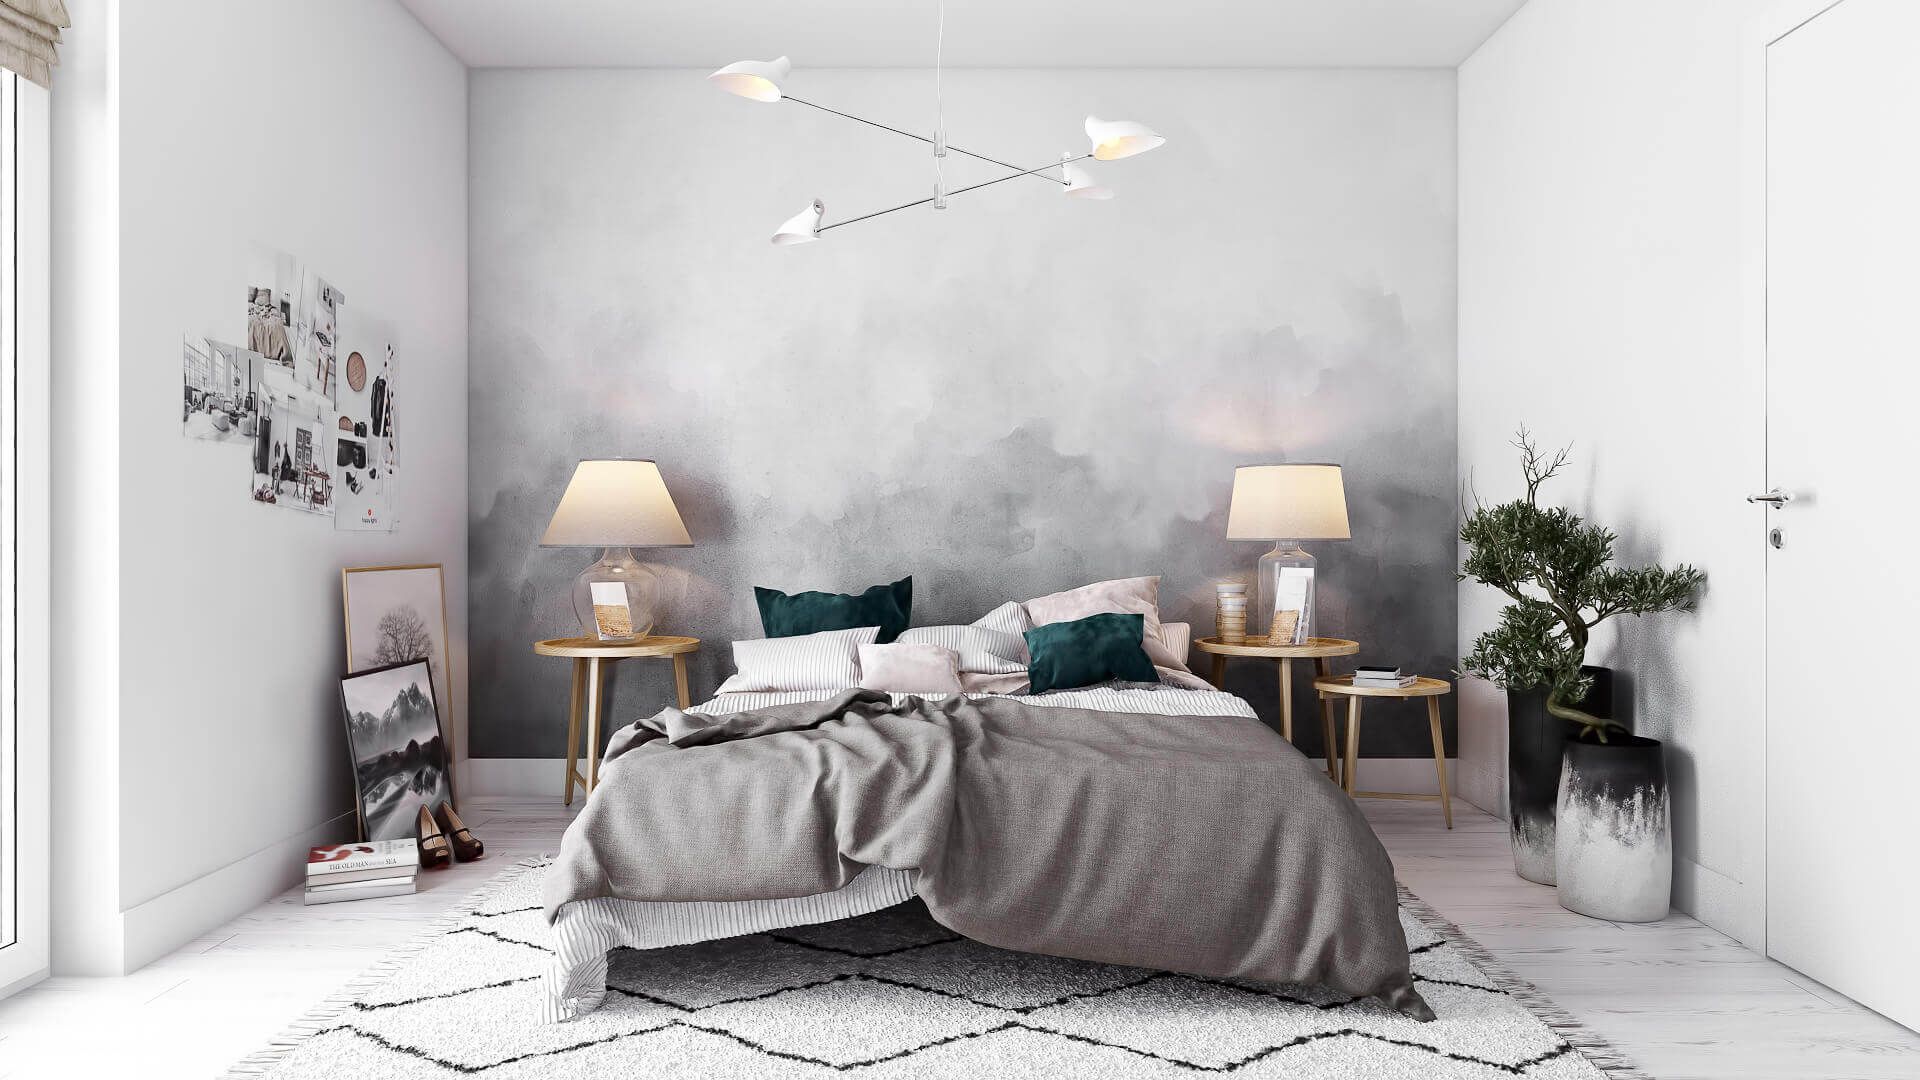 Photorealistic 3D Visualization for a Stylish Bedroom Design